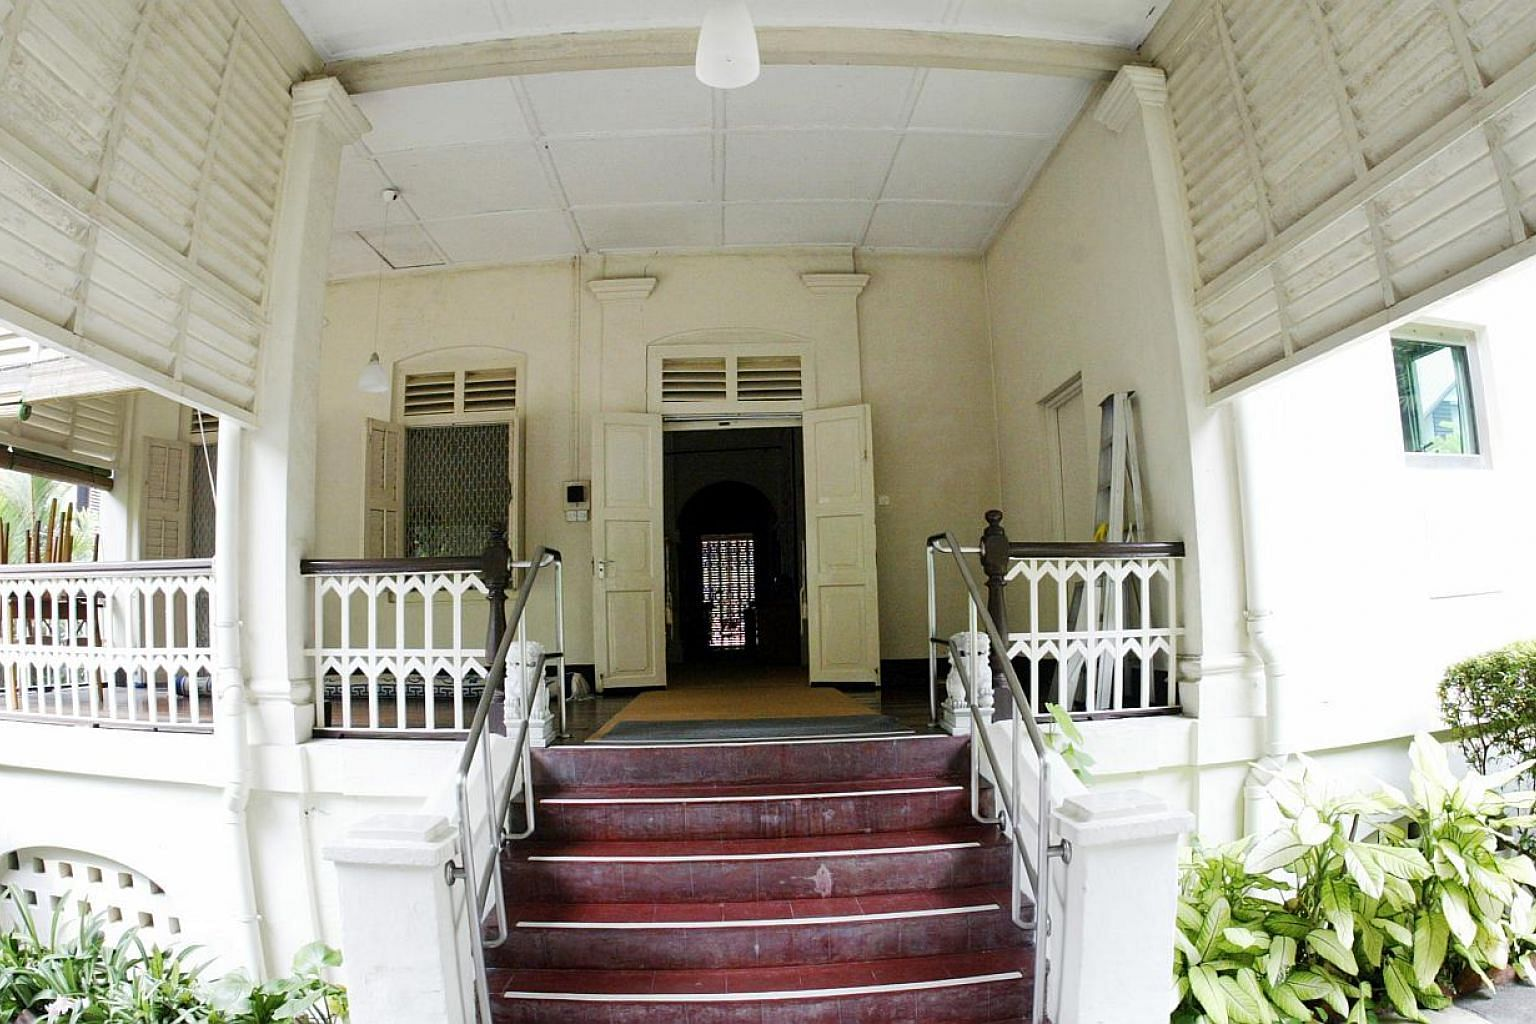 The debate over 38, Oxley Road is an opportunity to strengthen our heritage institutions and due process, and to consider the ramifications of carrying out an owner's wishes at the expense of national heritage, say the writers.